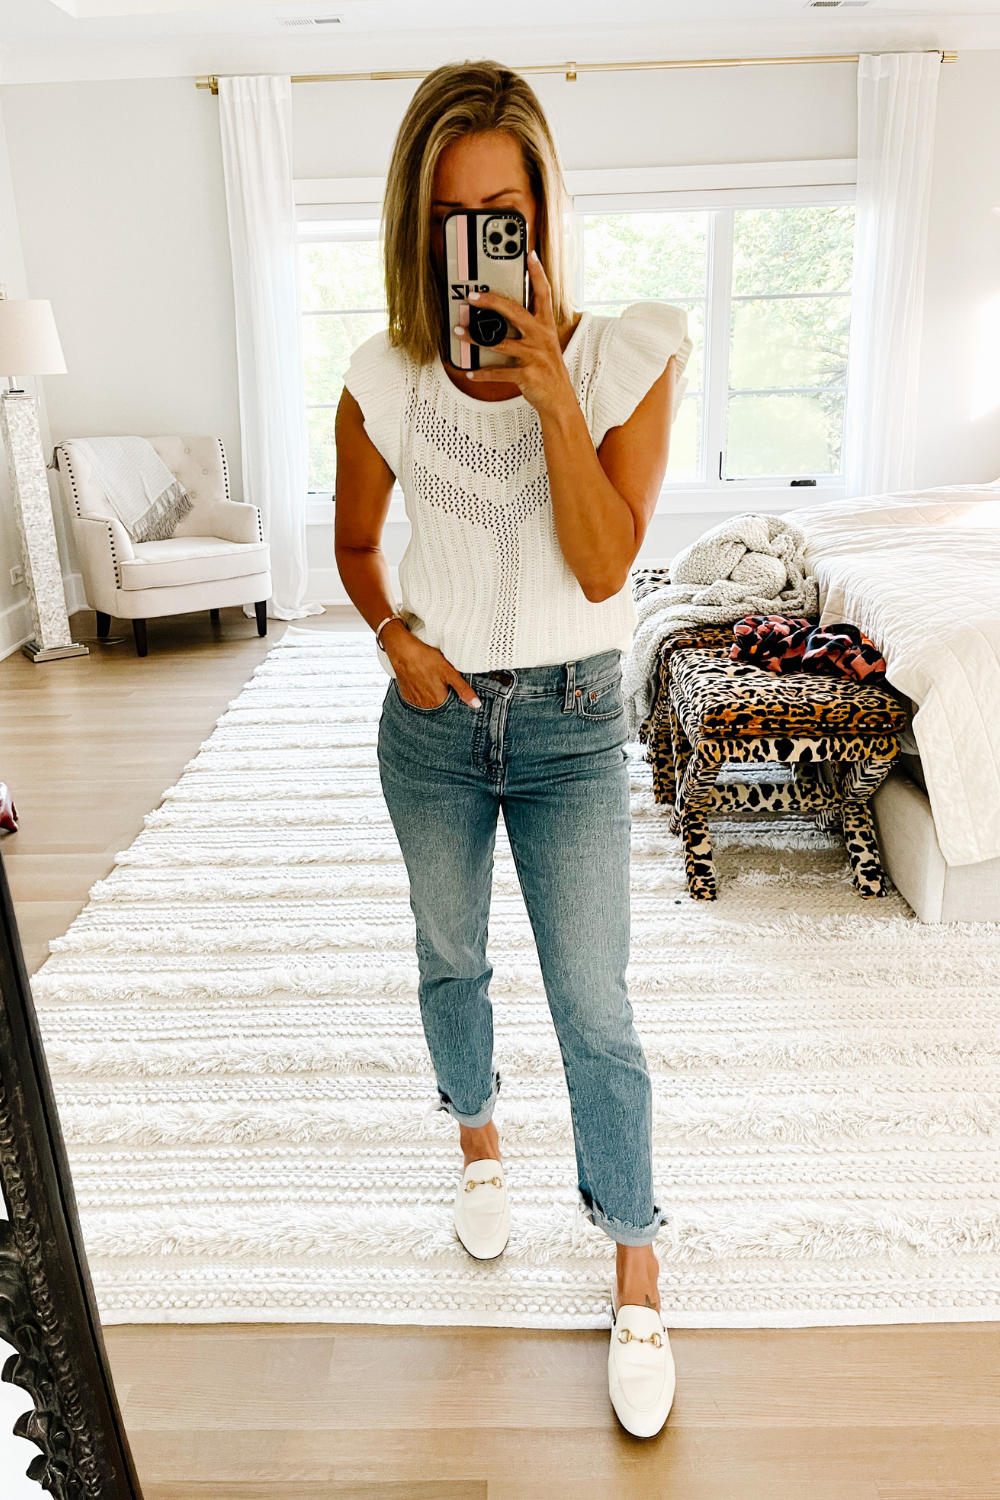 August #ootd round up: ruffle sleeve tank and denim